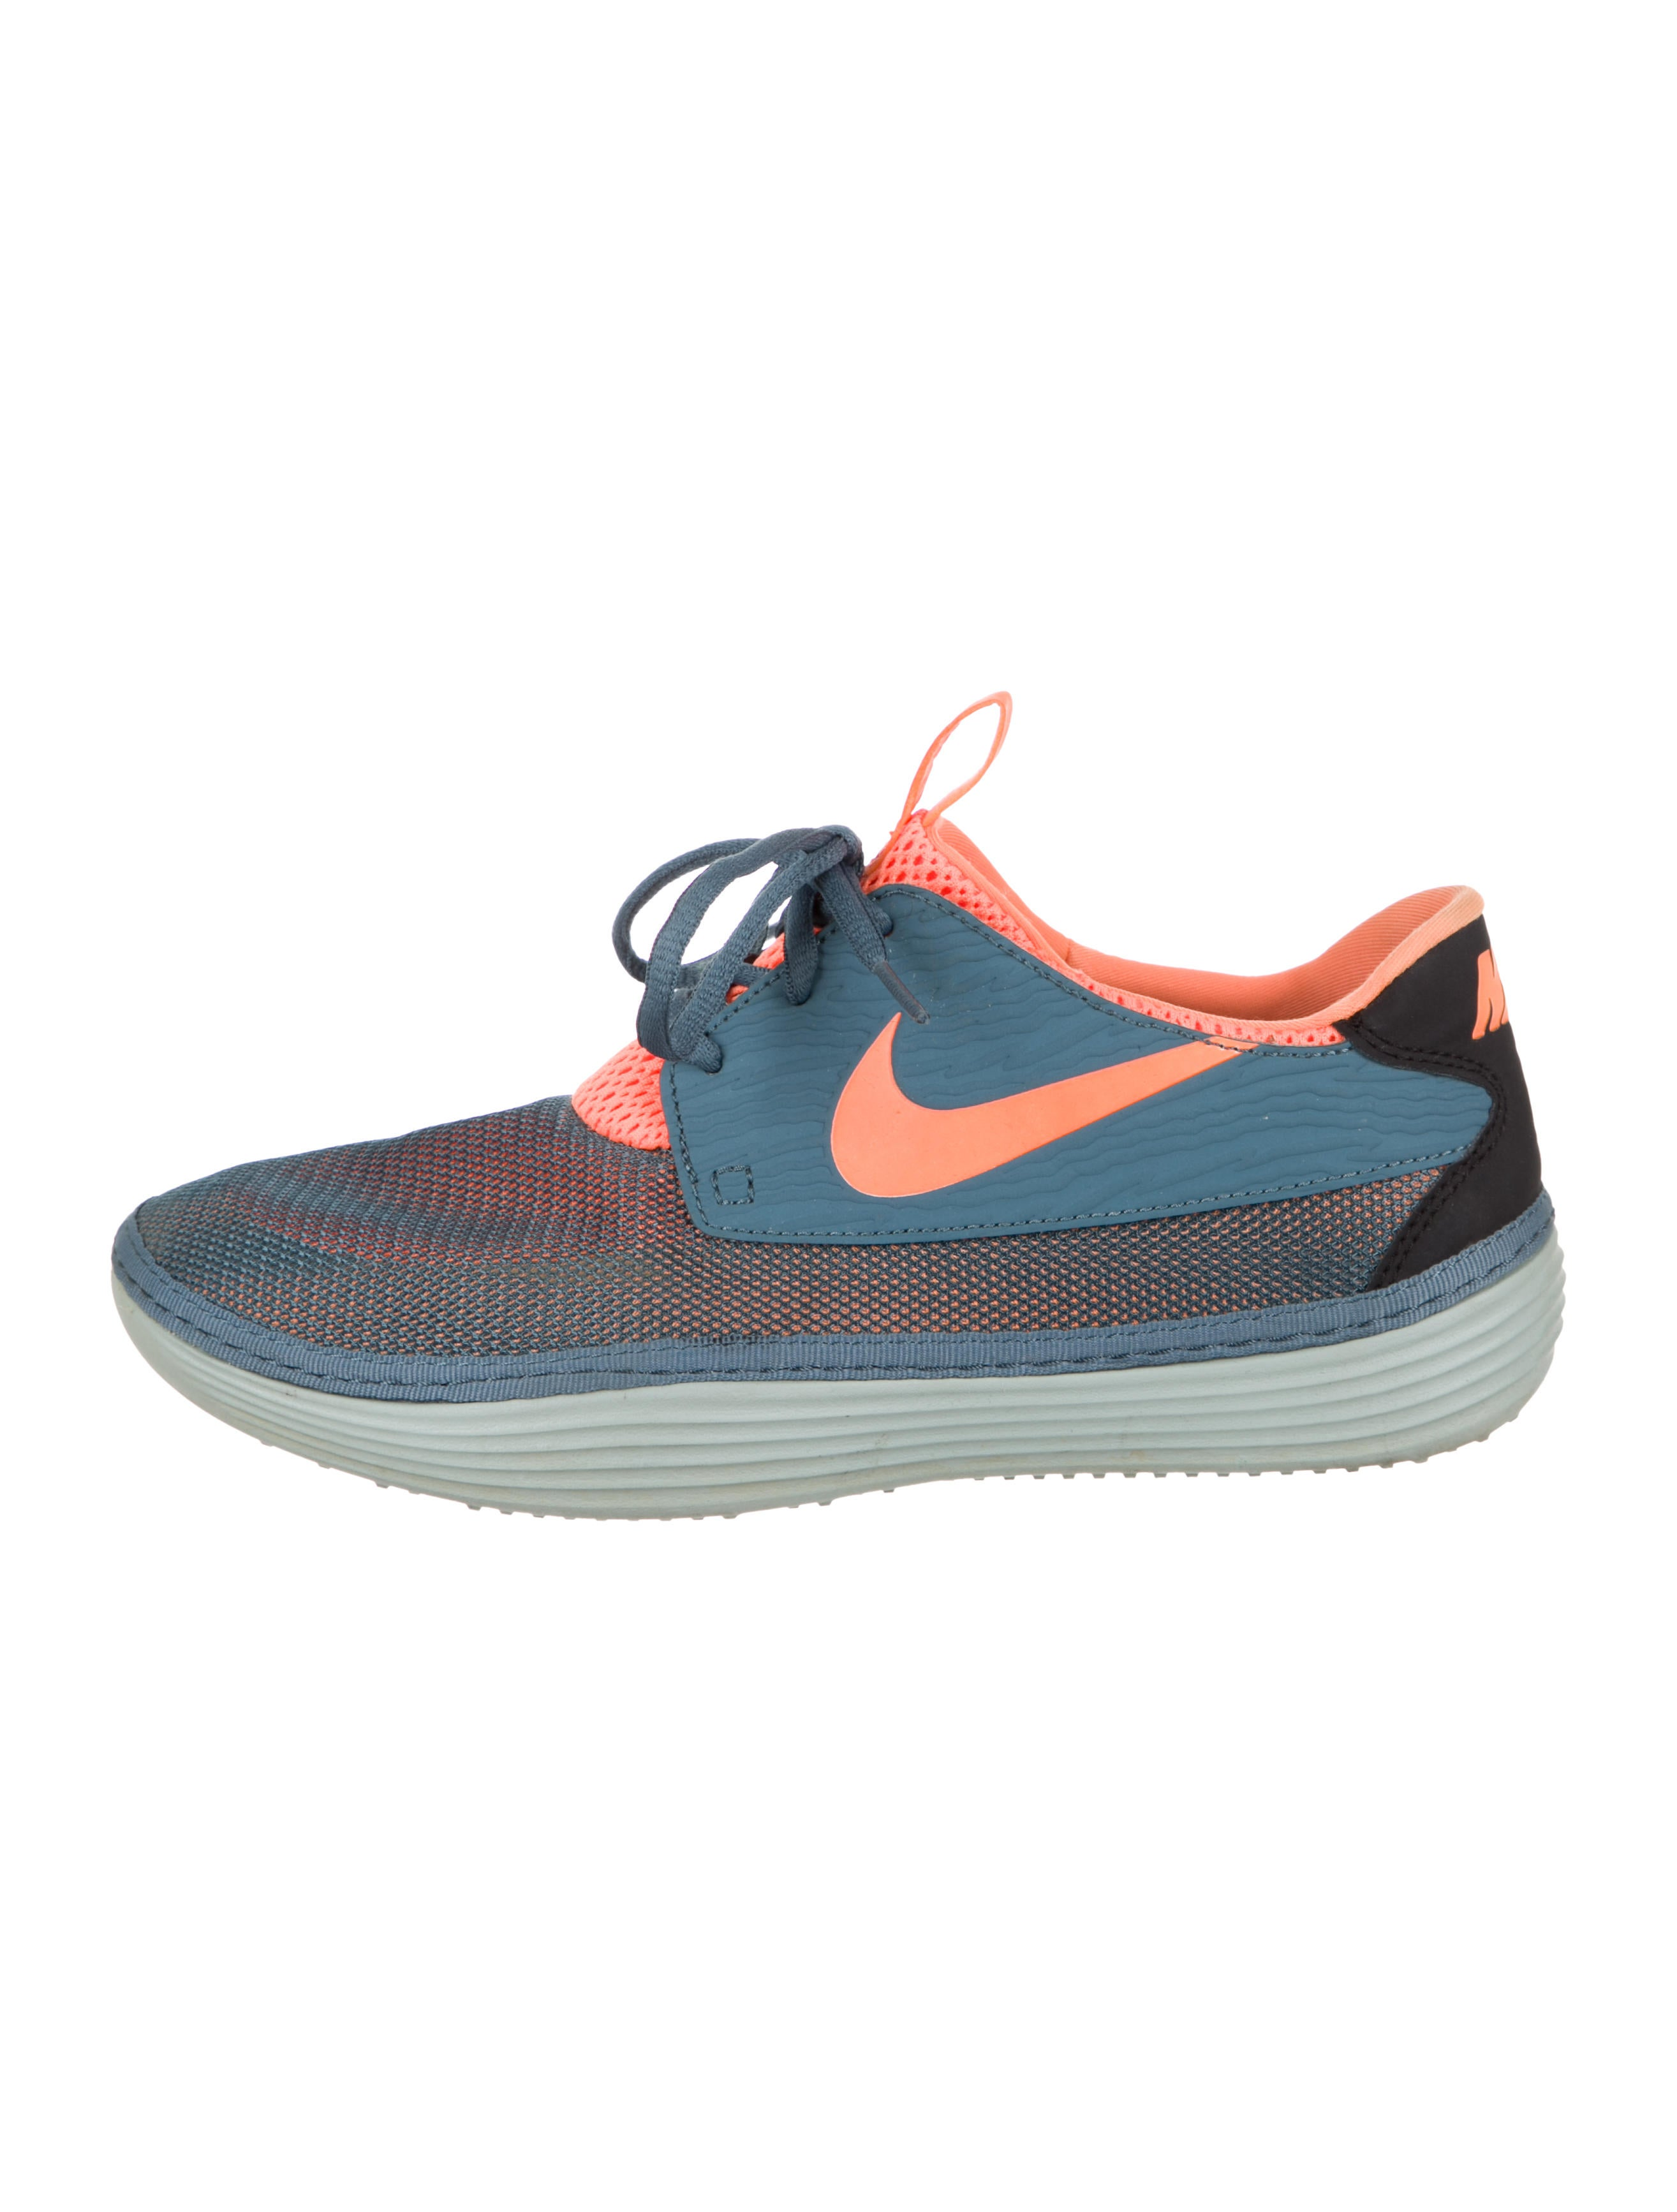 quality design 682c2 85fac Nike Solarsoft Moccasin Sneakers - Shoes - WU226796   The RealReal